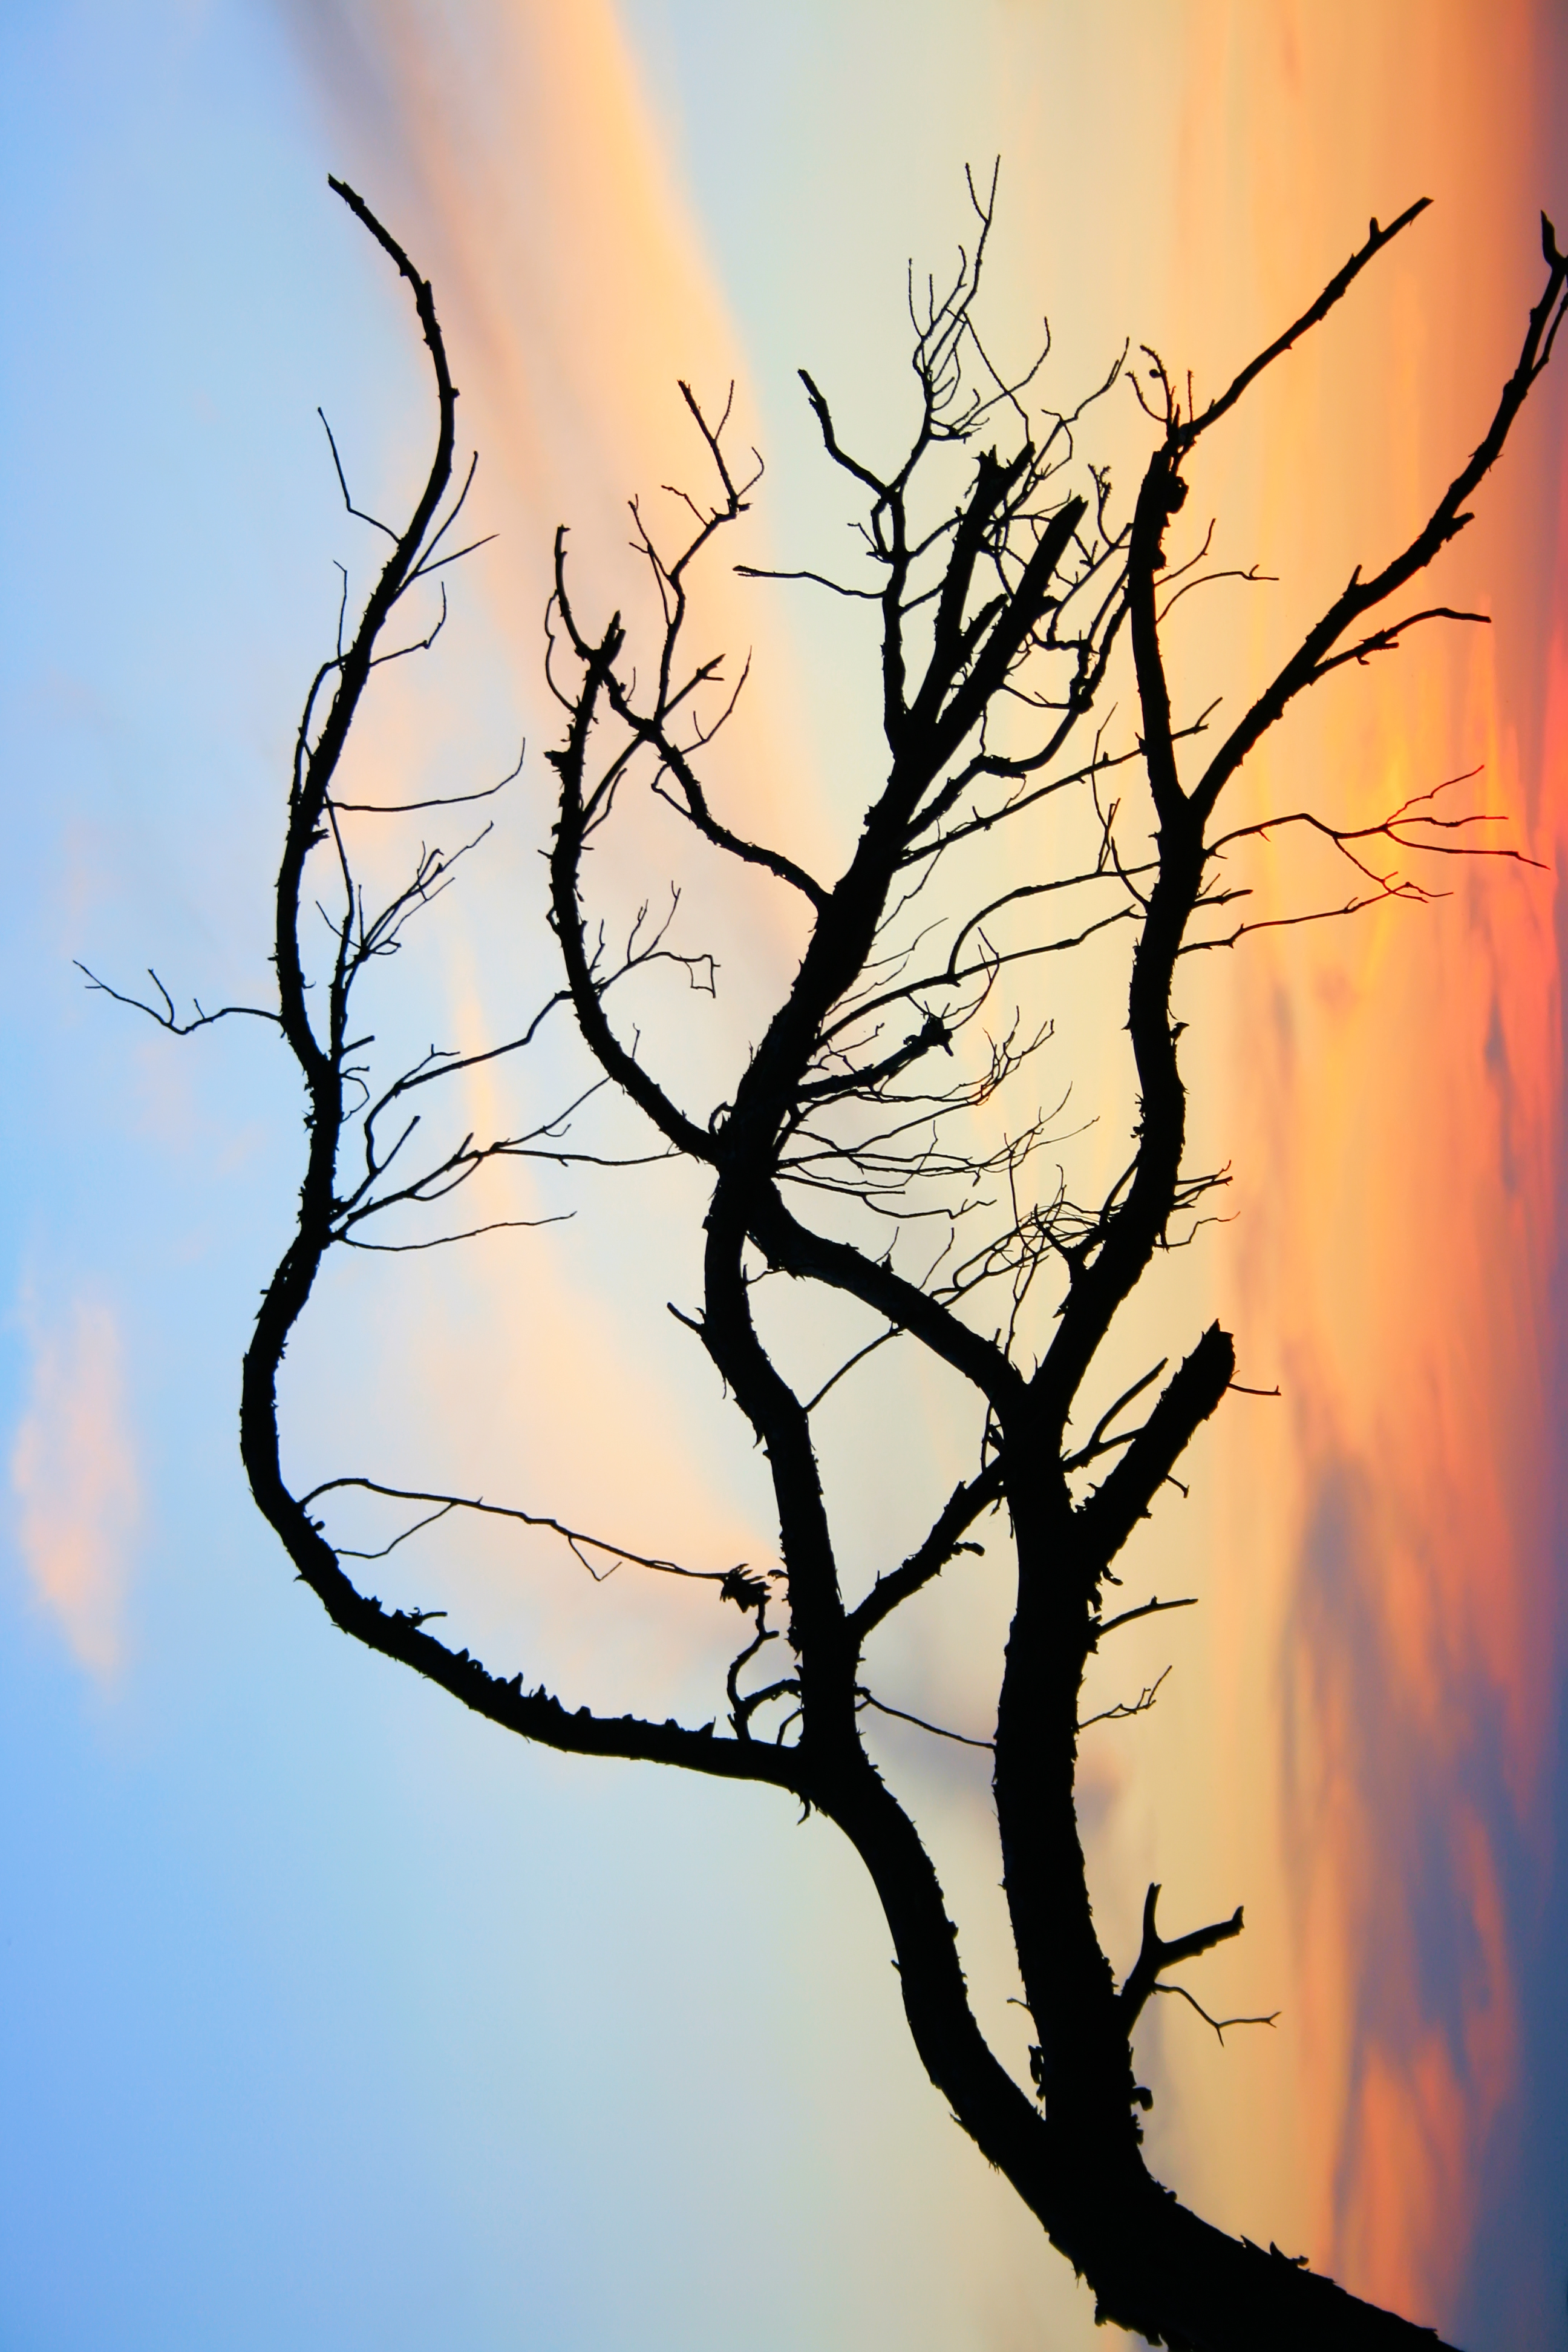 Branch, Bare, Clouds, Sky, Tree, HQ Photo